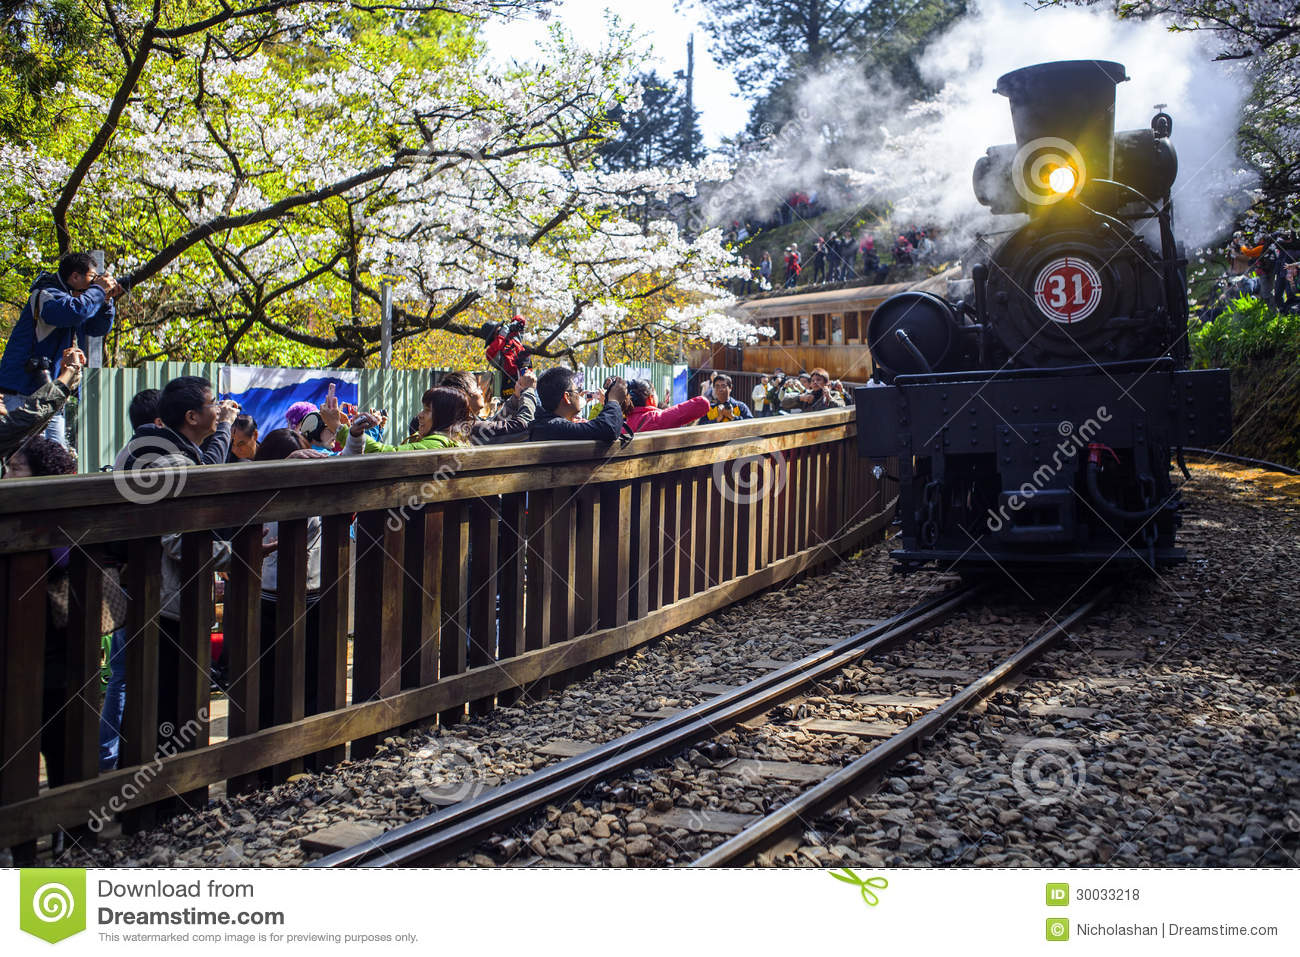 Alishan Forest Train Editorial Stock Photo - Image: 30033218: dreamstime.com/royalty-free-stock-photos-alishan-forest-train-adv...